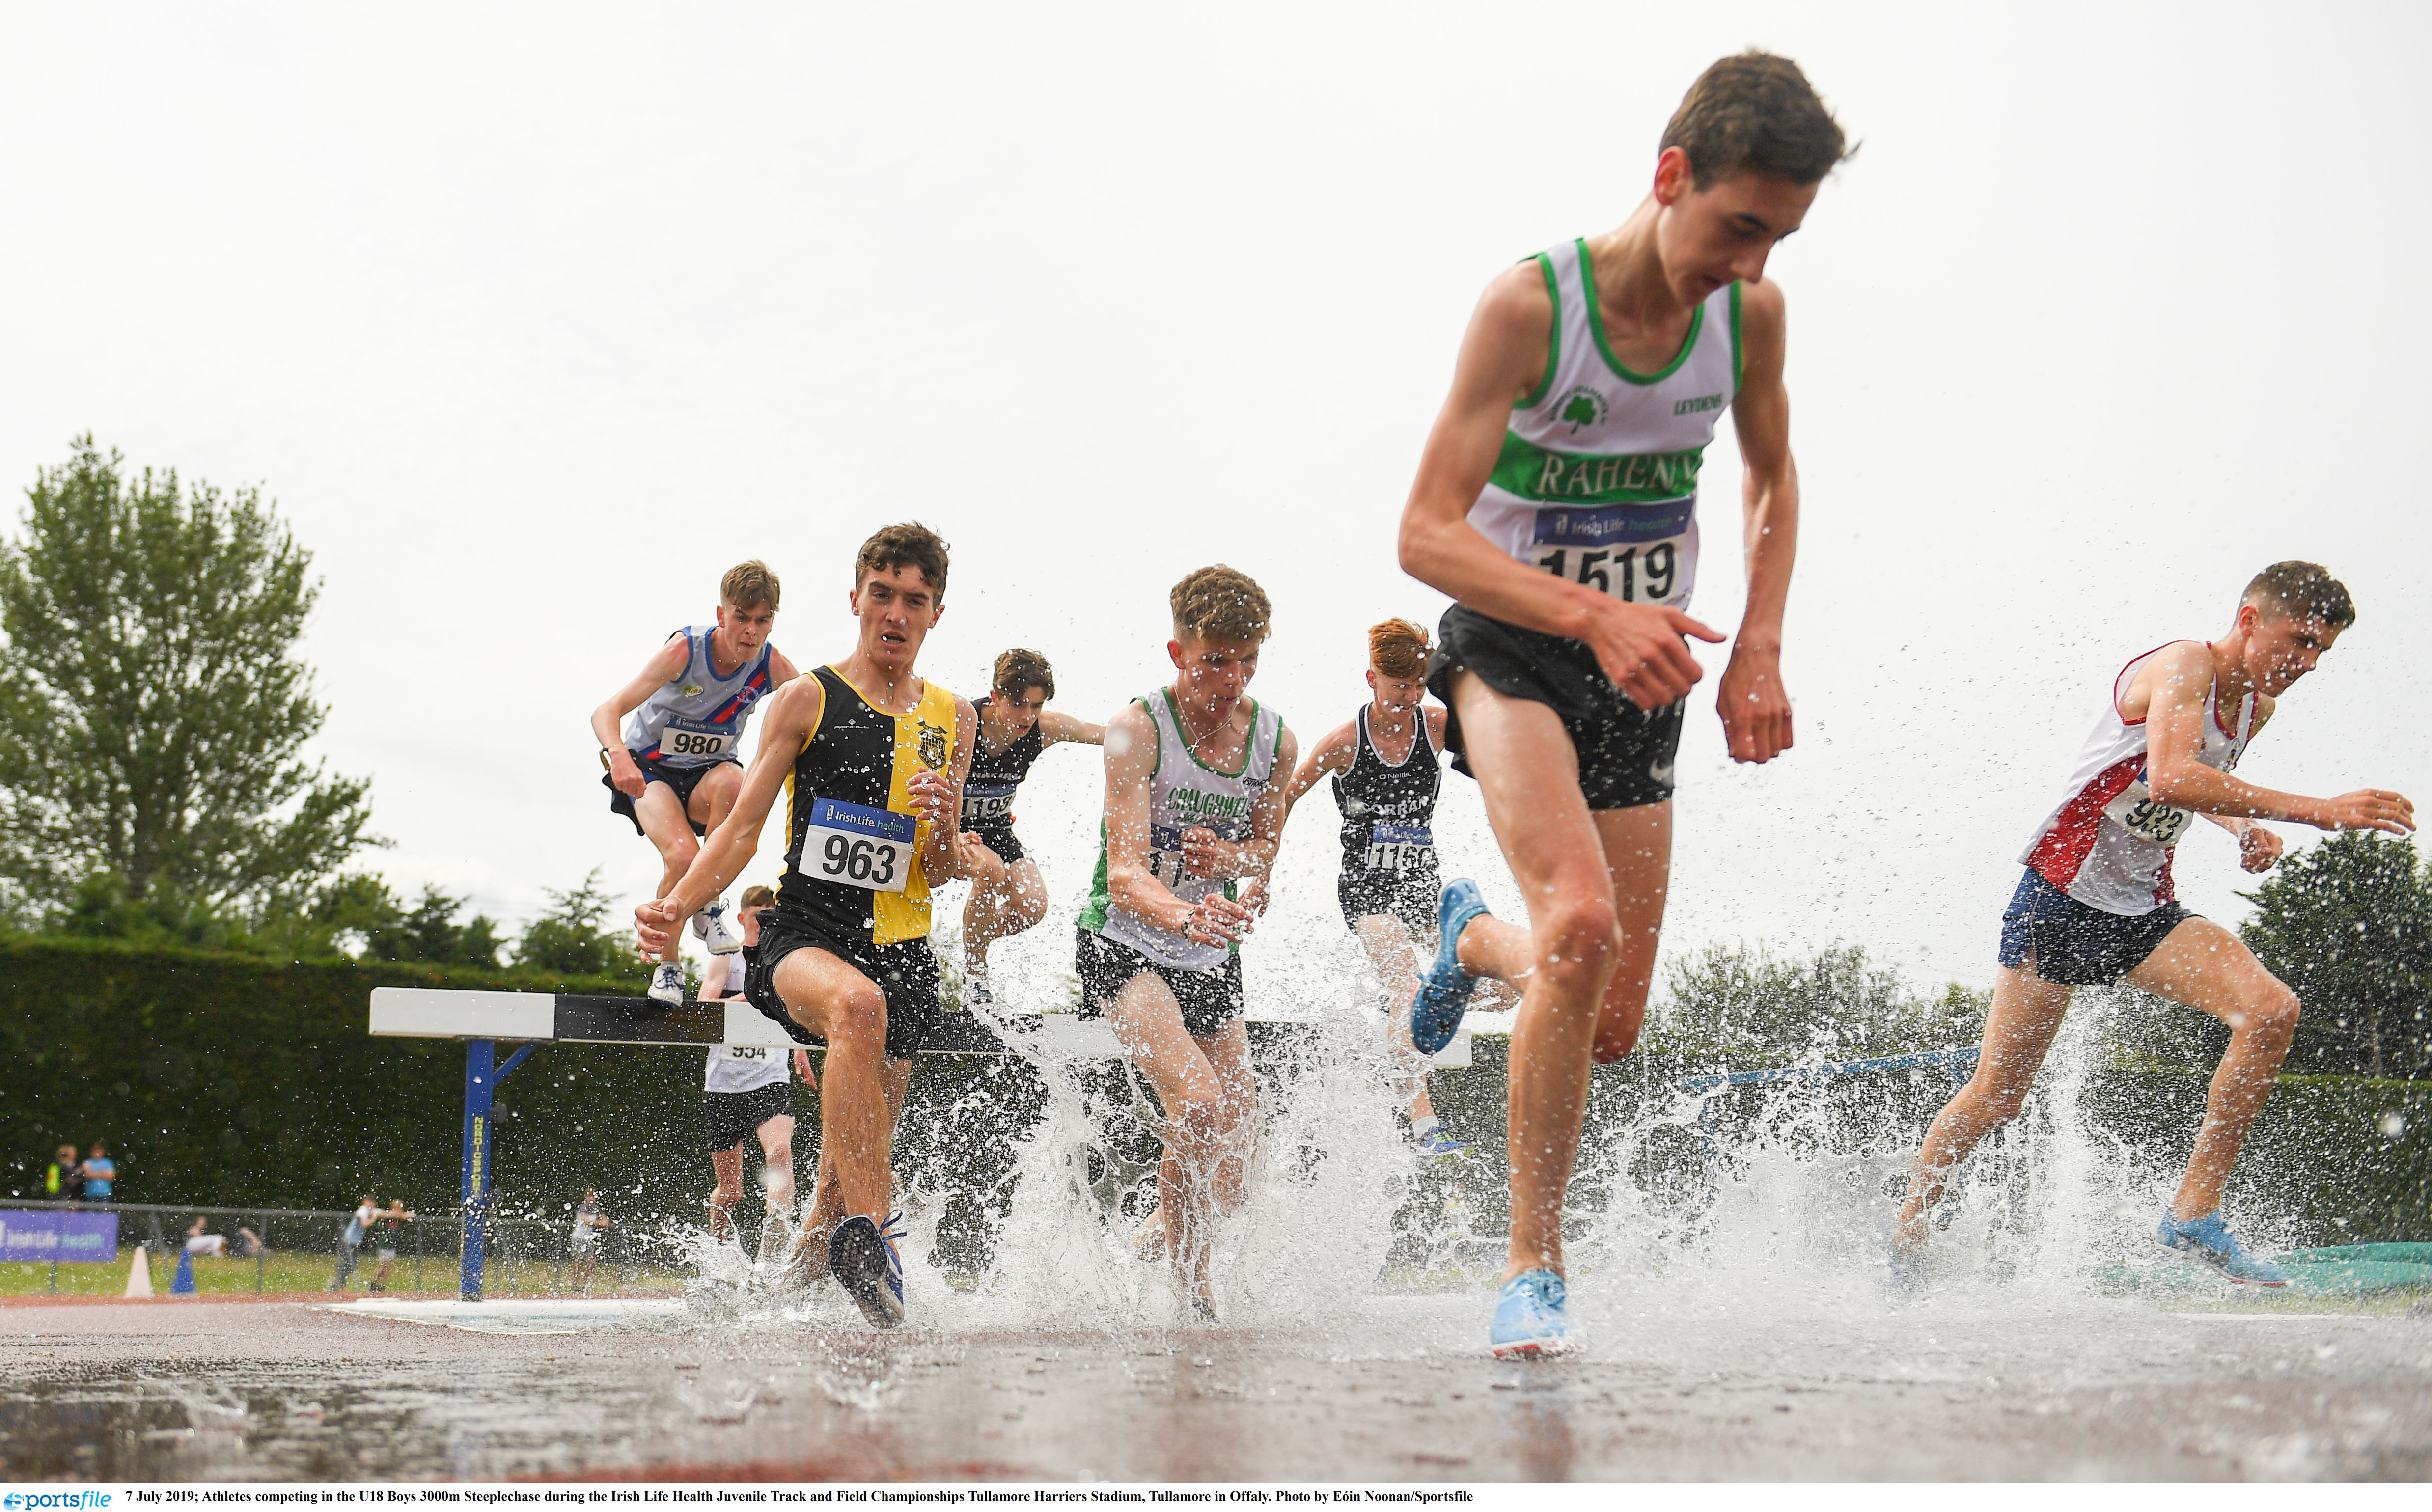 Event Information: Irish Life Health Juvenile Track and Field Championships